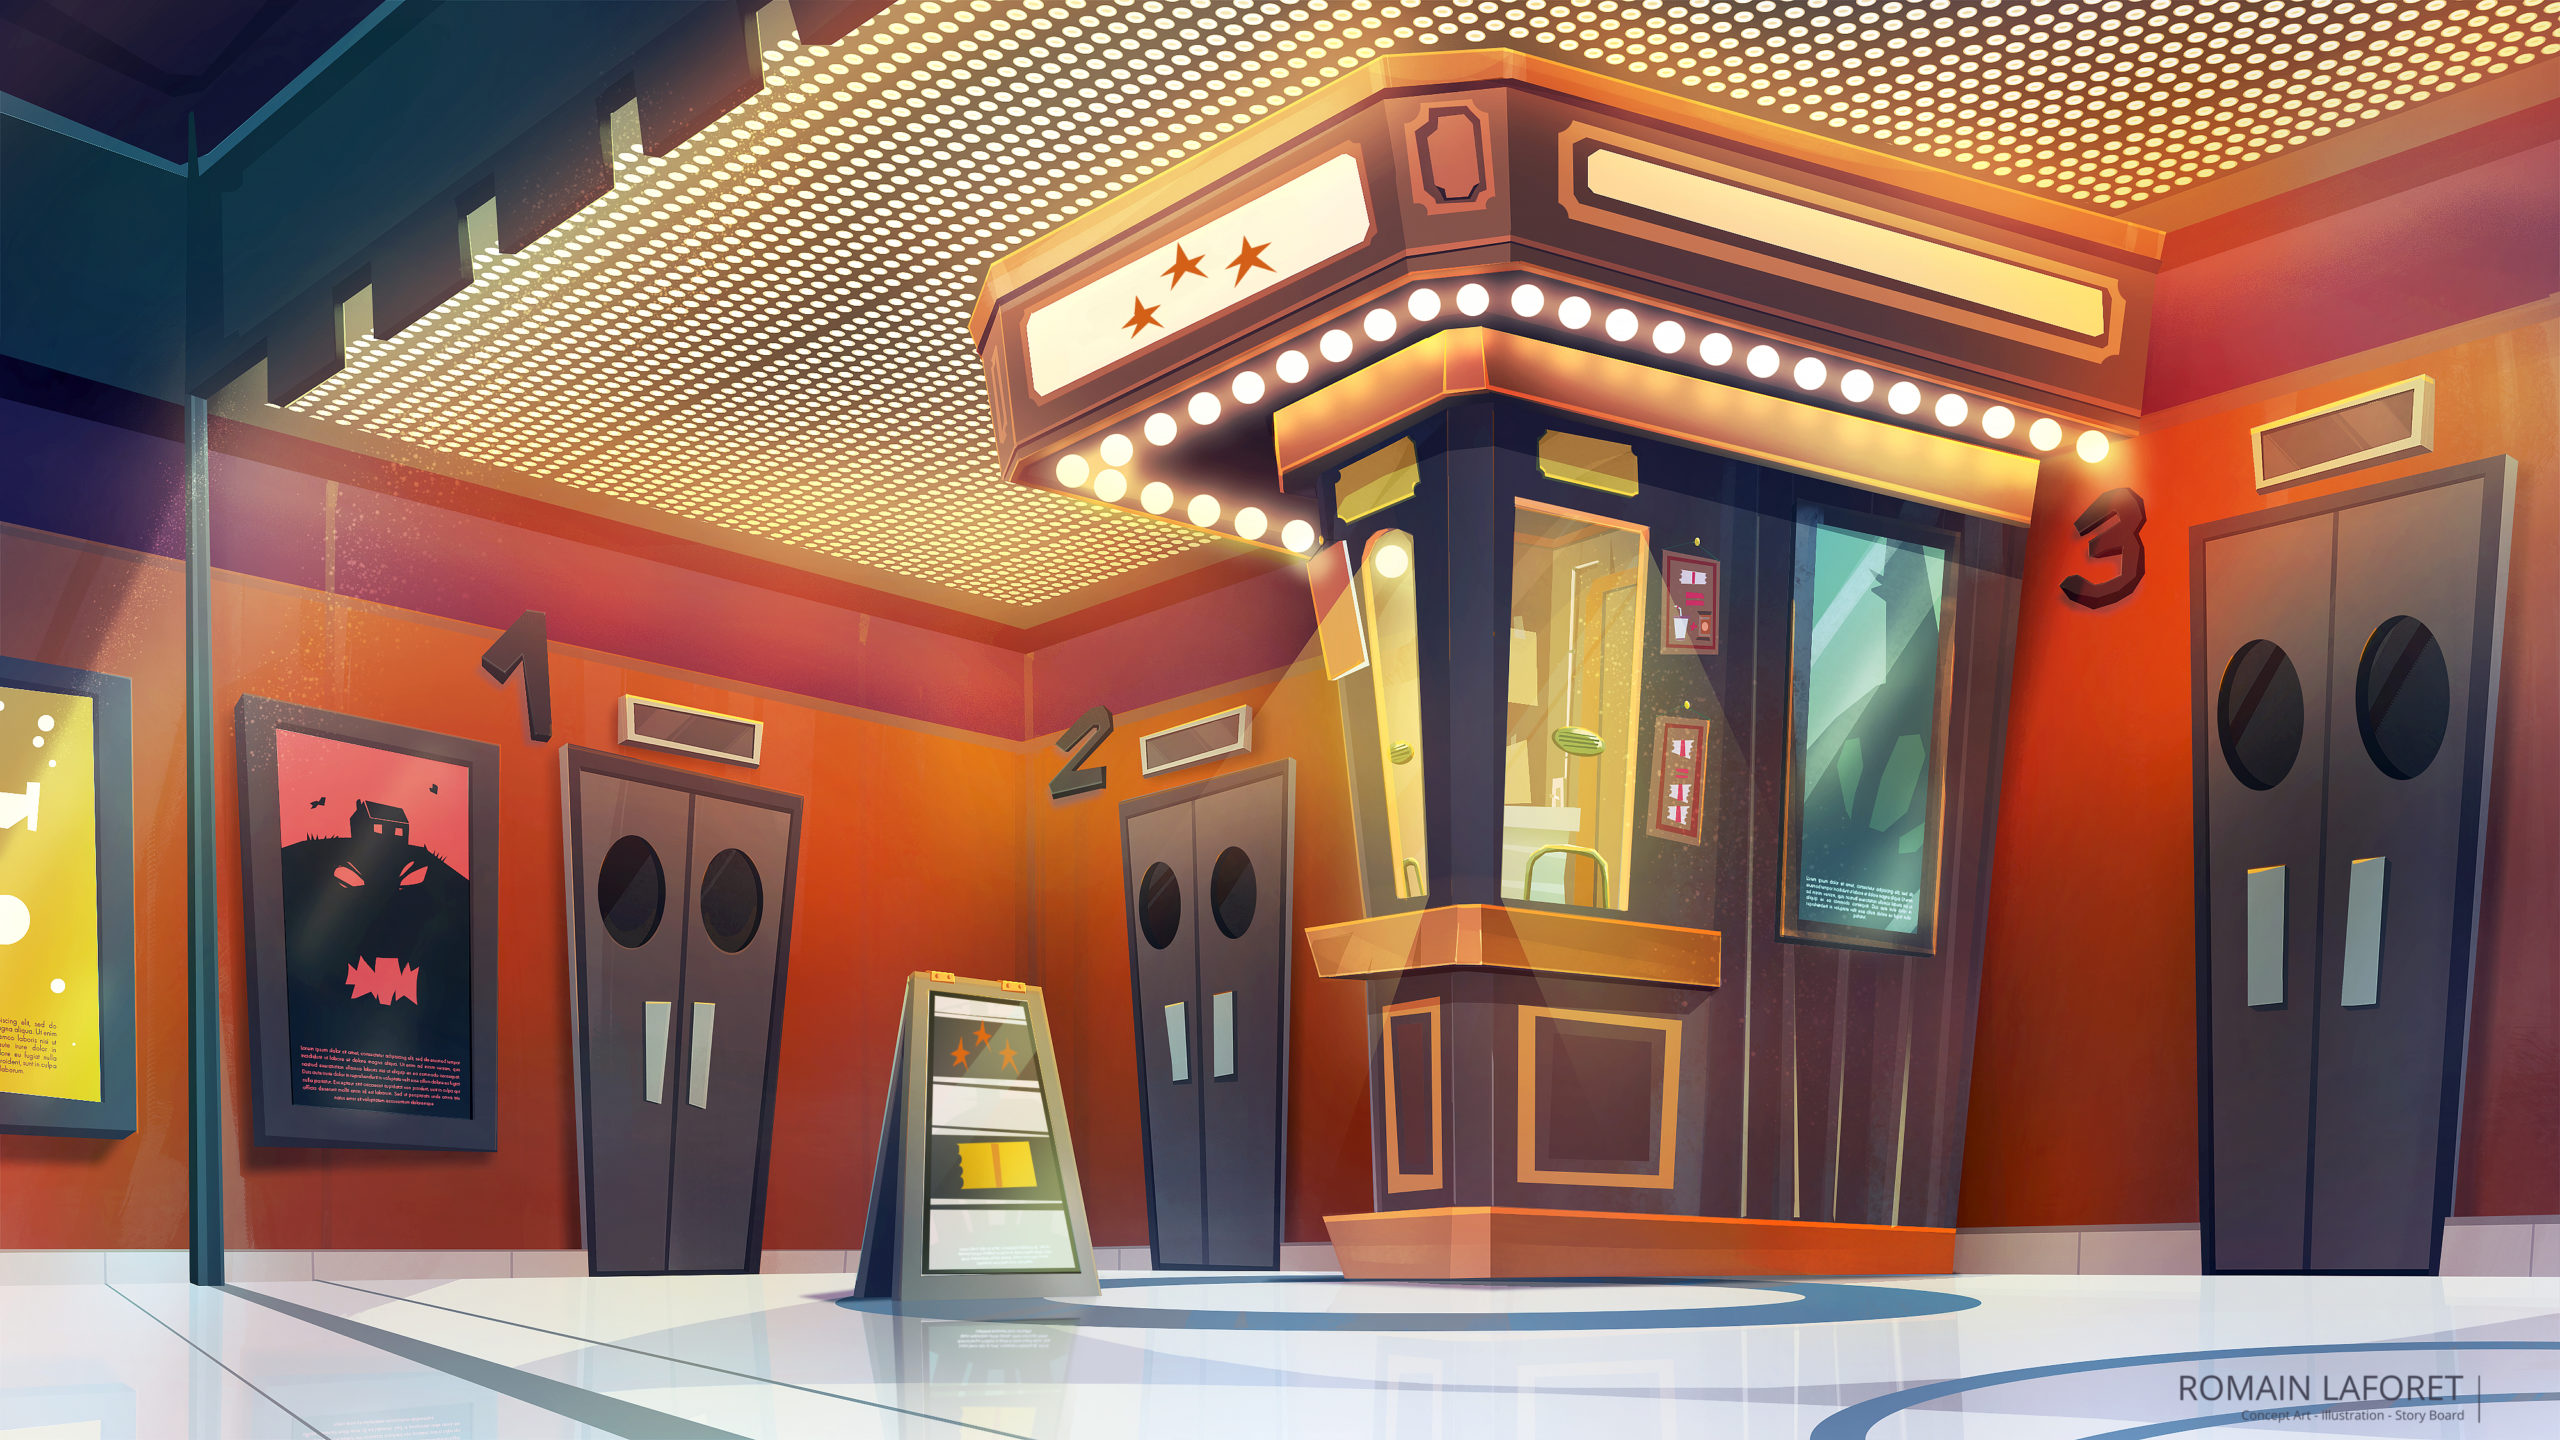 cinema ticket booth concept background romain laforet